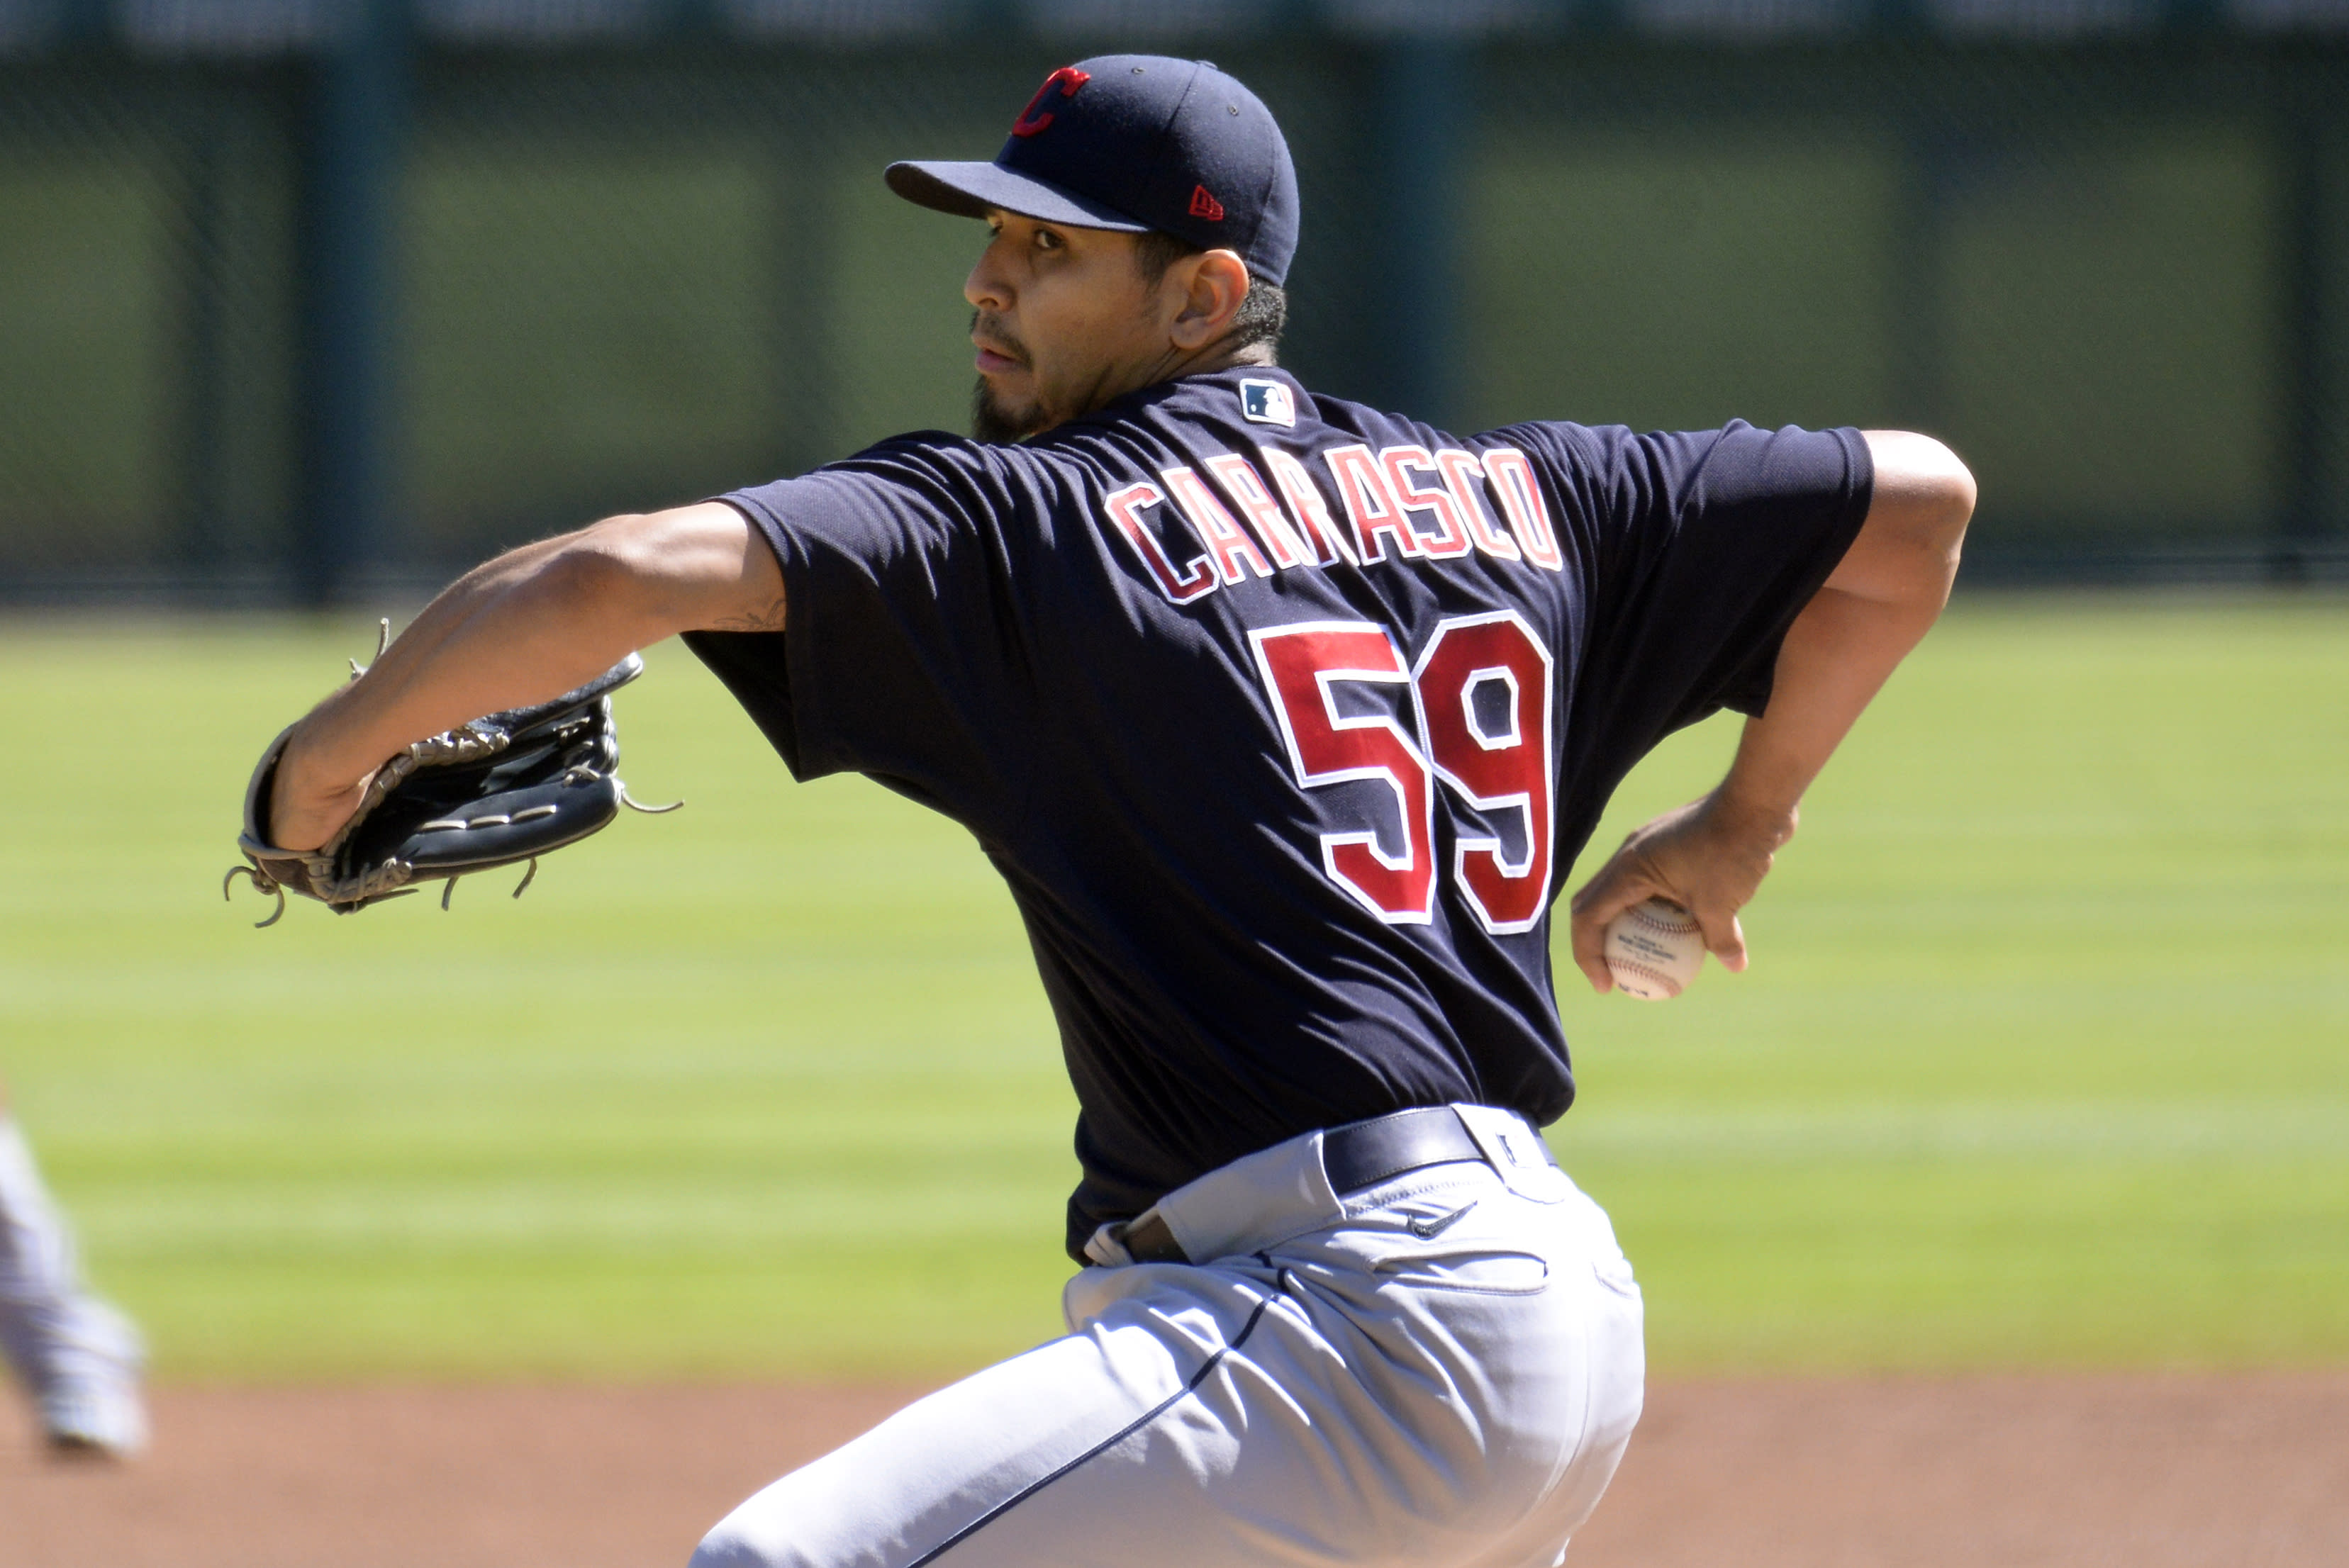 Cleveland Indians starting pitcher Carlos Carrasco throws against the Detroit Tigers in the first inning of a baseball game, Sunday, Sept. 20, 2020, in Detroit. (AP Photo/Jose Juarez)